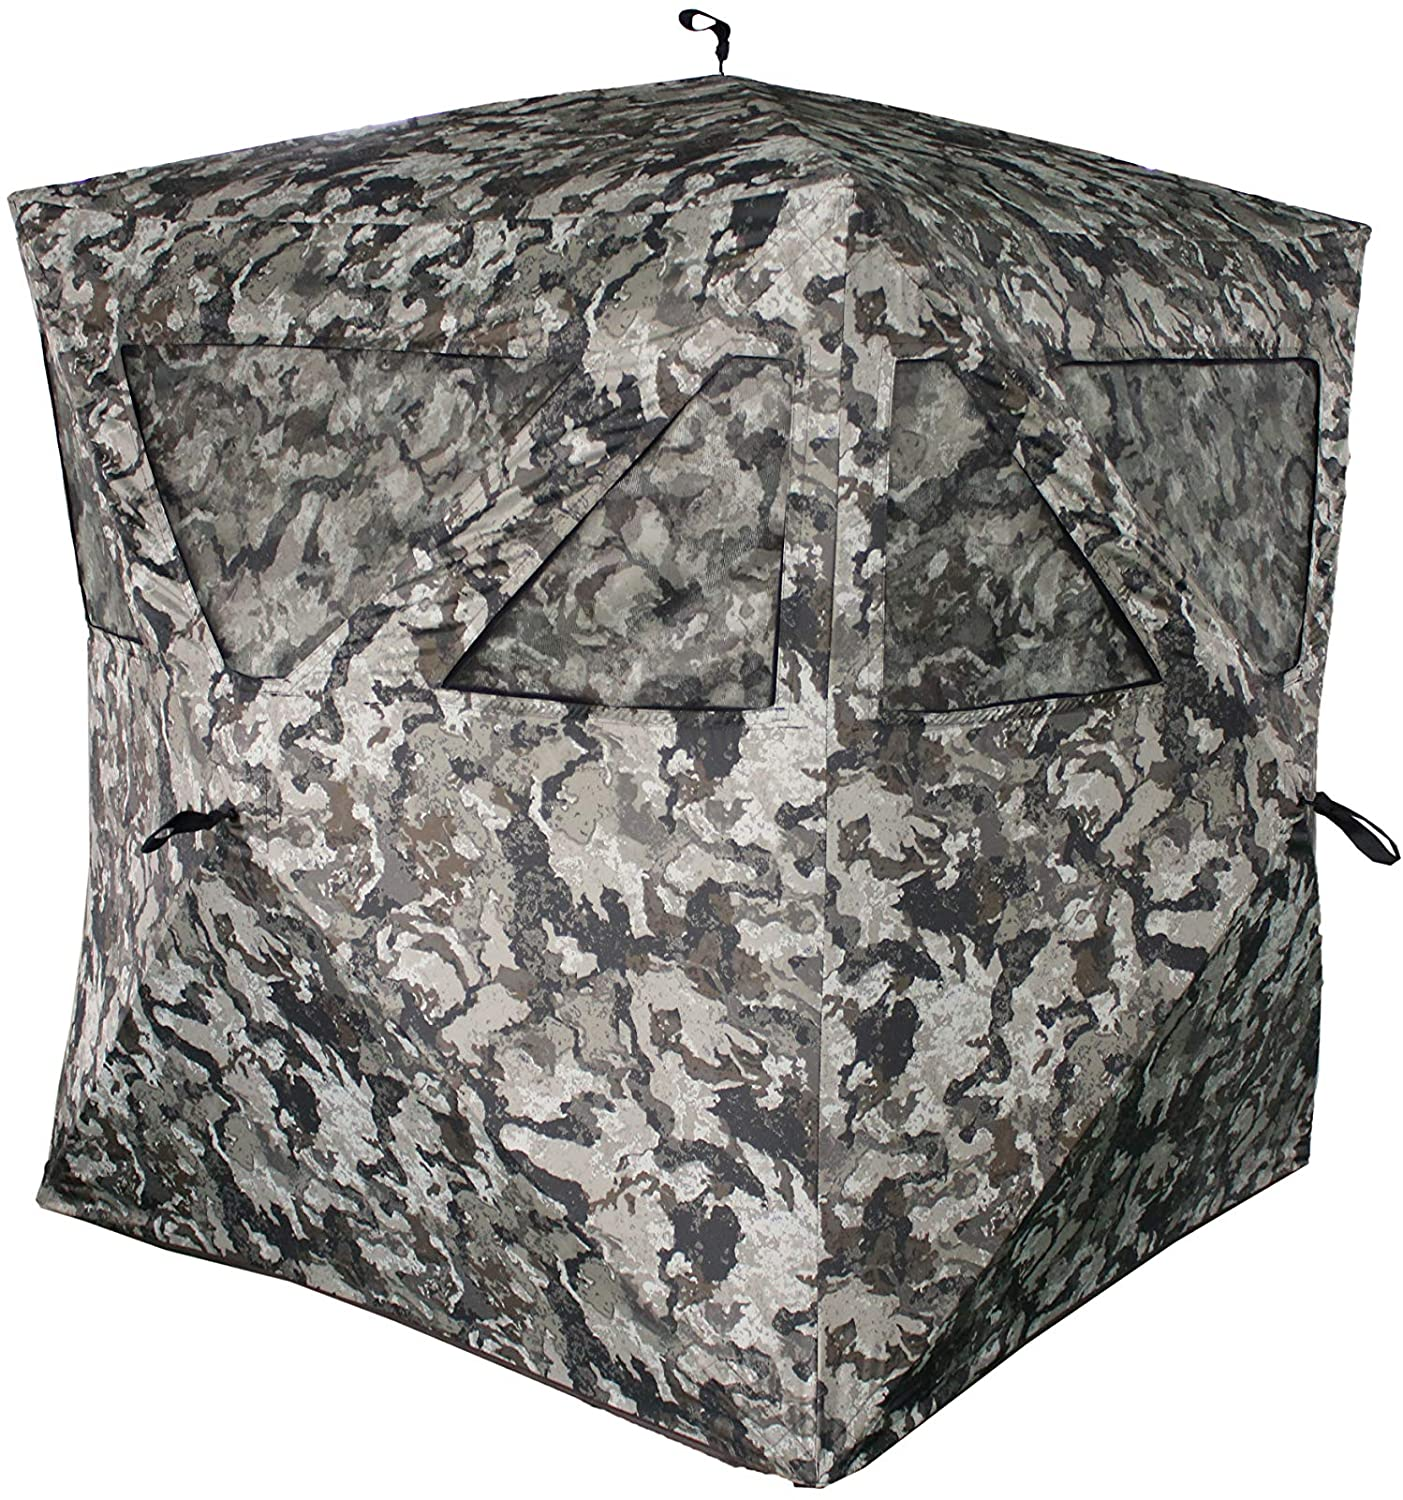 Muddy Outdoors Ground Blind 250 Hunting Blind Gb250